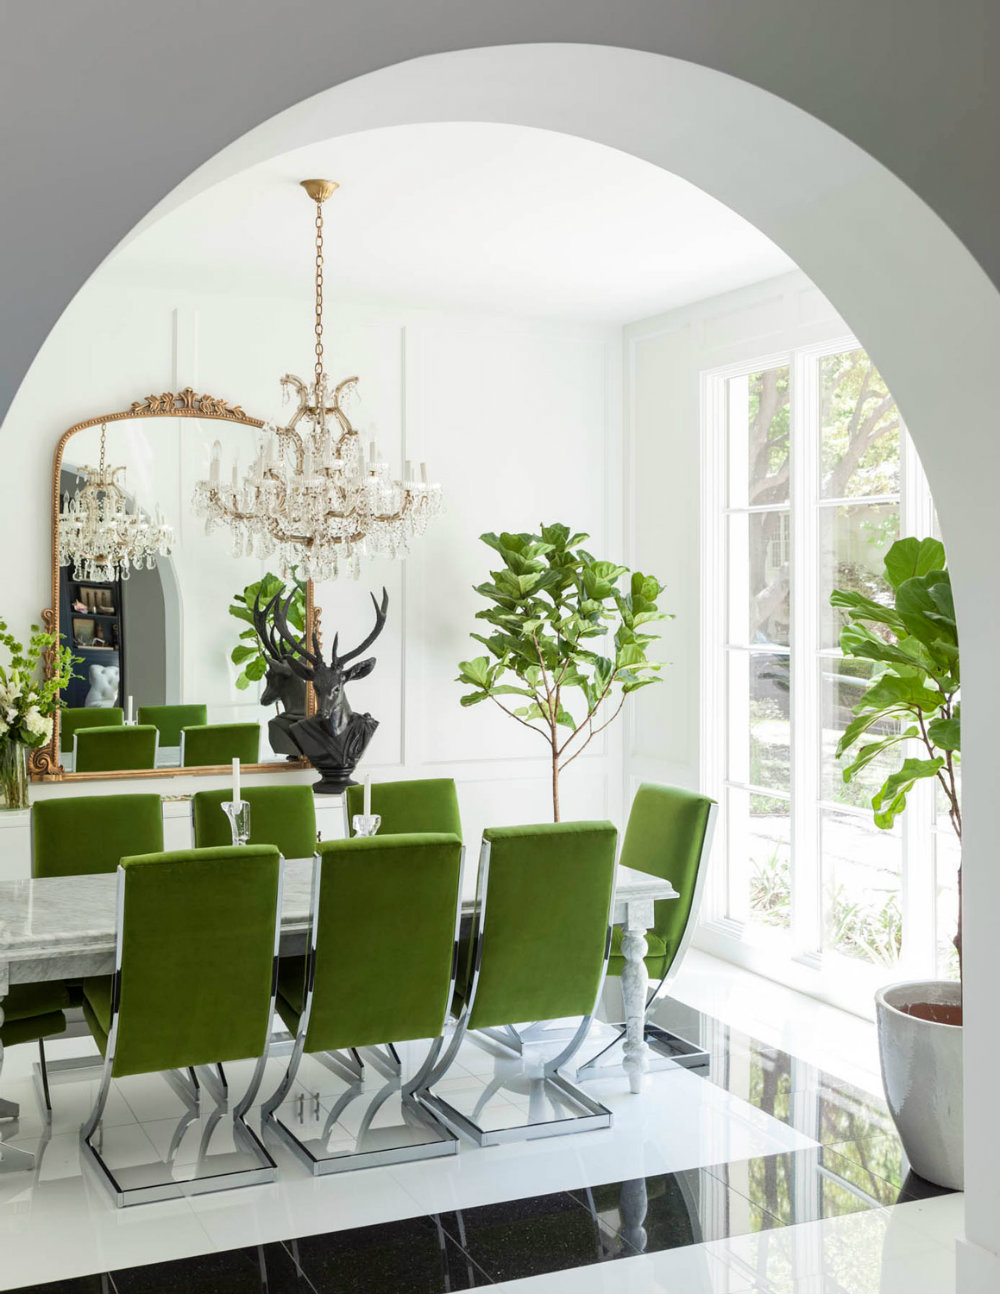 7 Summer-Ready Luxury Dining Rooms To Inspire You 06 luxury dining rooms 7 Summer-Ready Luxury Dining Rooms To Inspire You 7 Summer Ready Luxury Dining Rooms To Inspire You 06